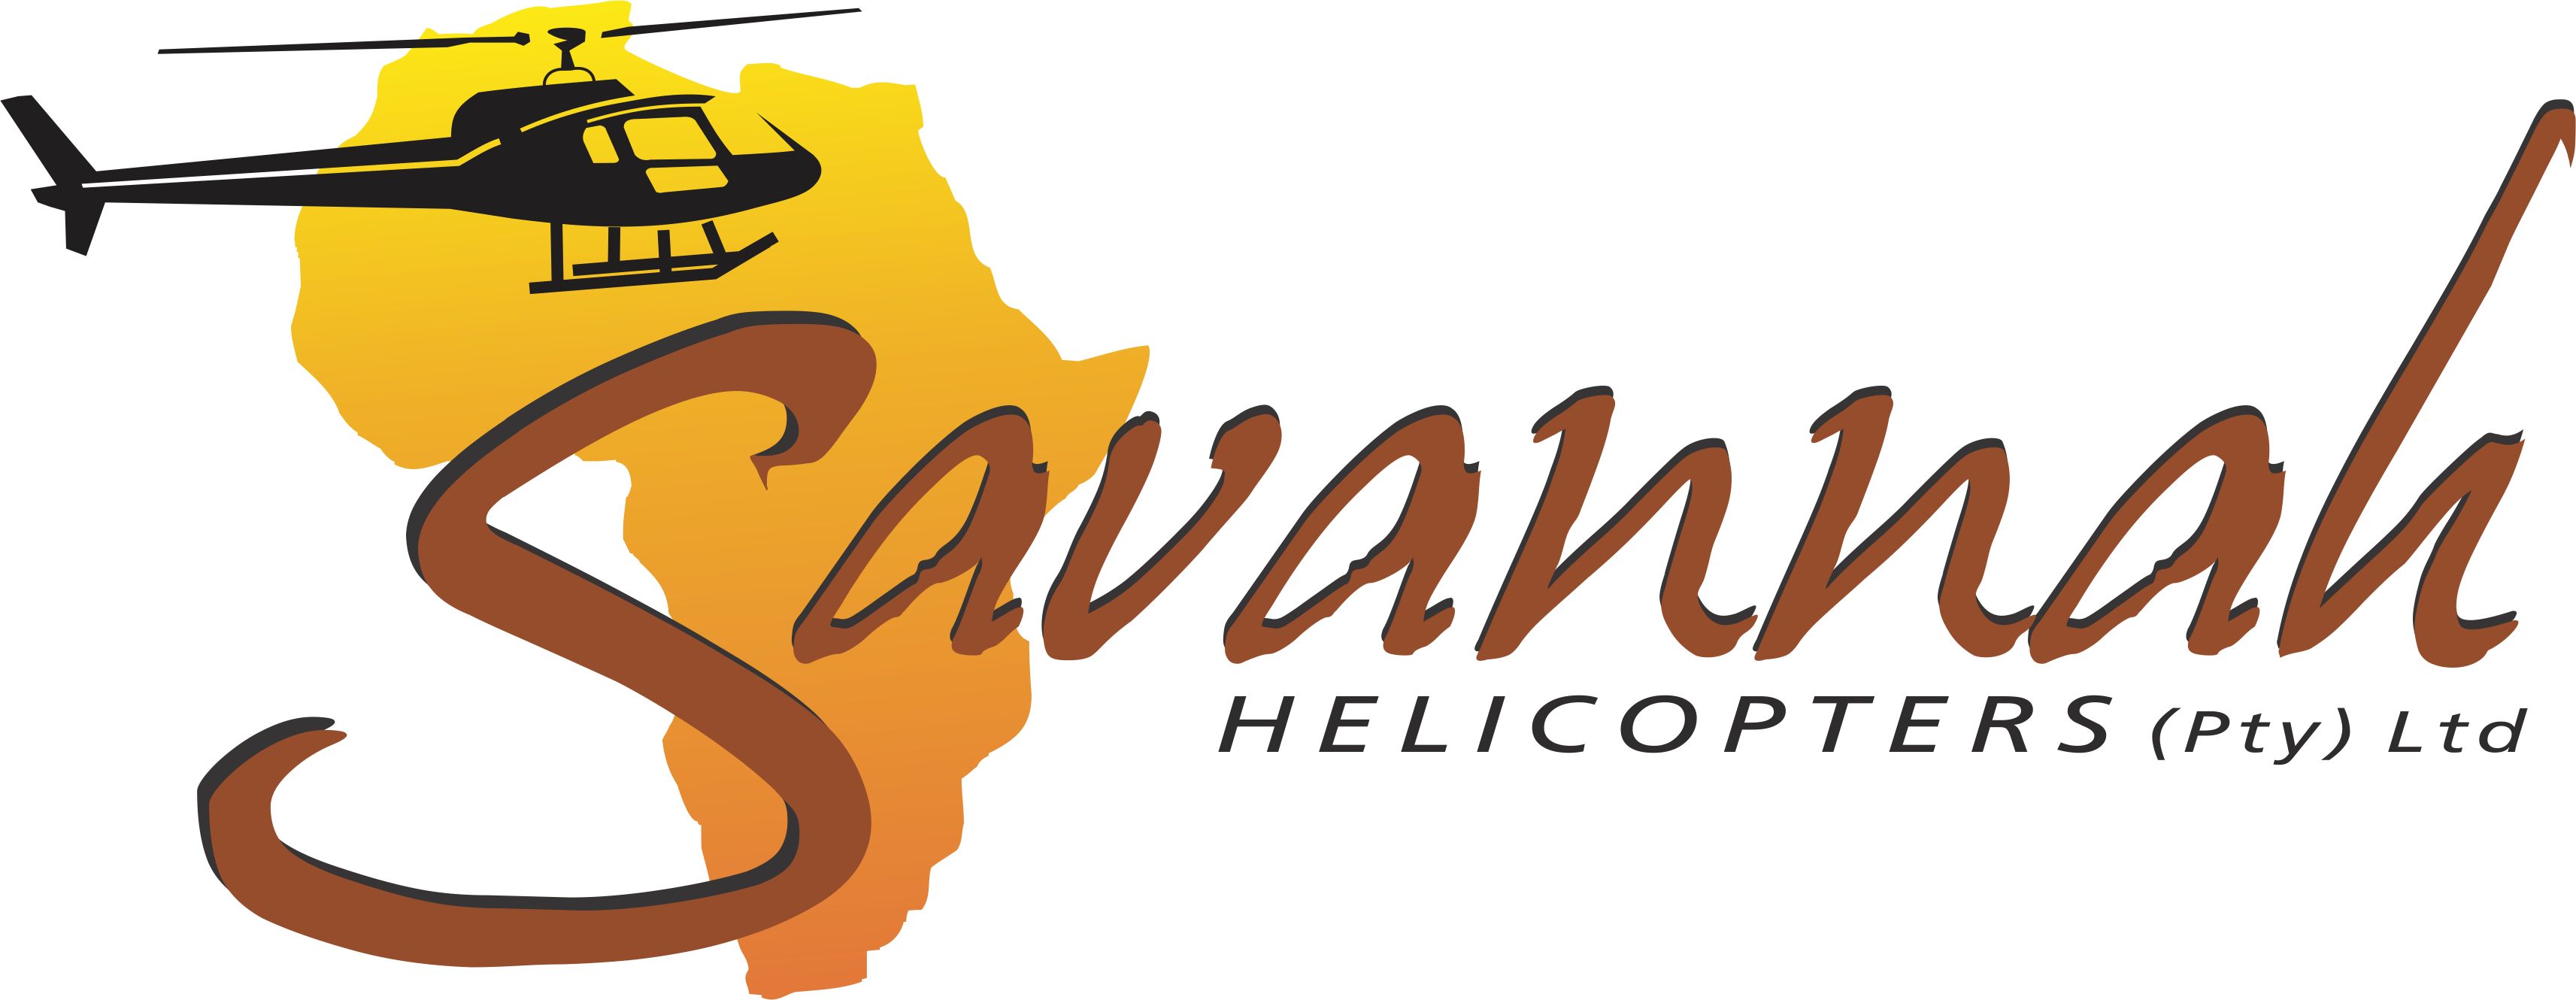 Savannah Helicopters